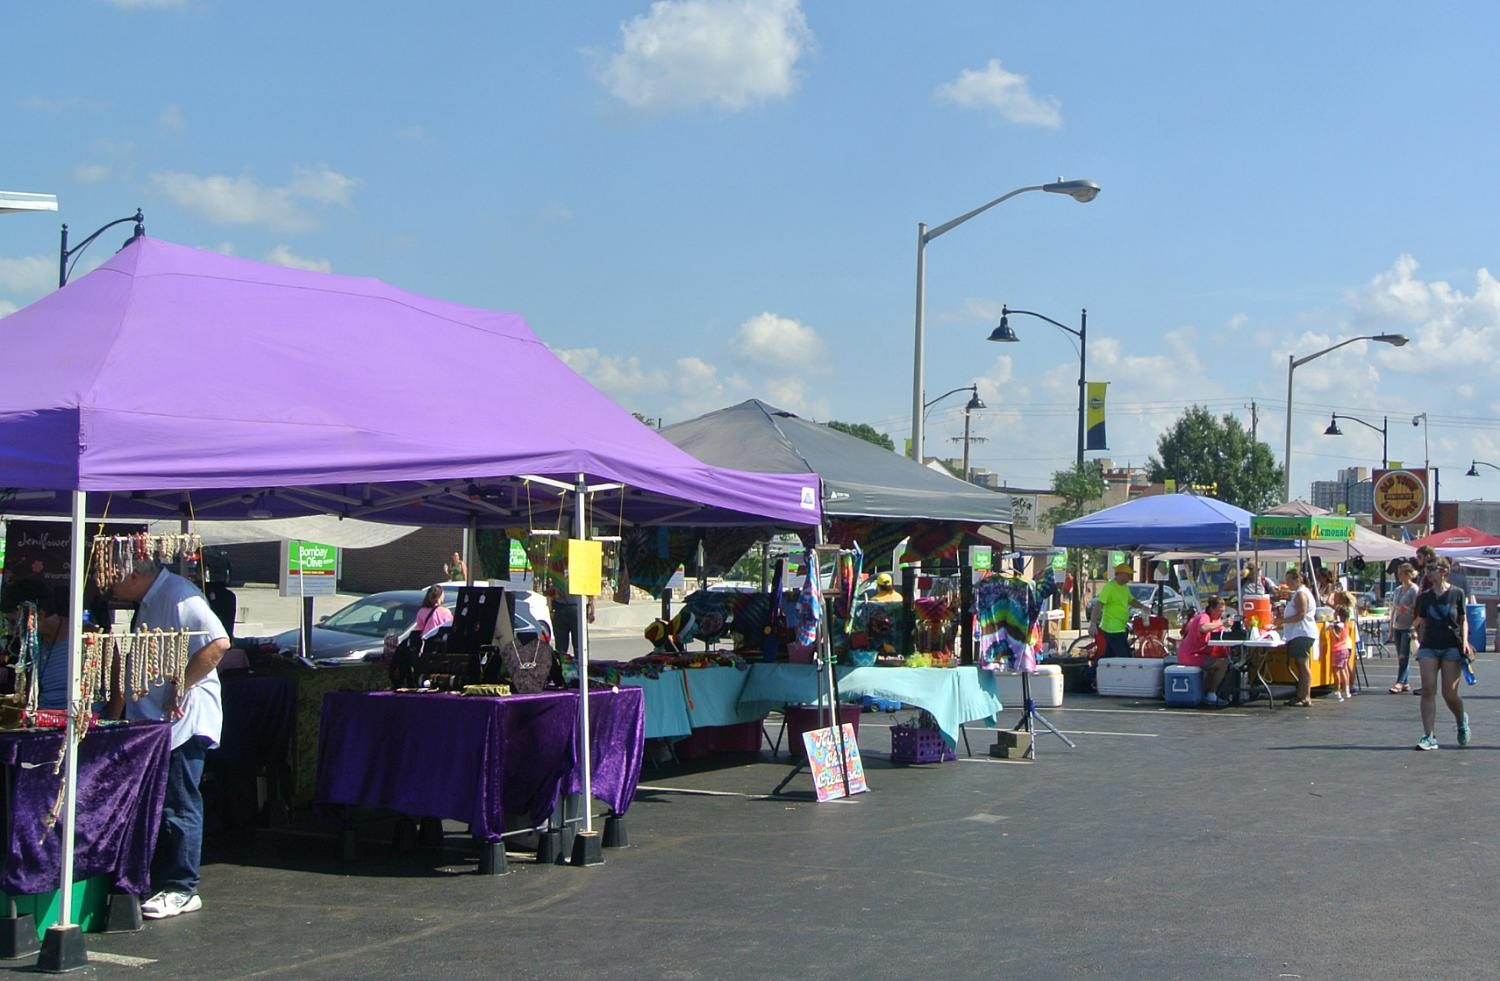 Local+businesses+and+vendors+of+Southern+Illinois+sold+eclipse-themed+gear+and+products+and+food+at+the+Carbondale+Eclipse+Marketplace+from+Aug.+19-21+on+South+University+Avenue.